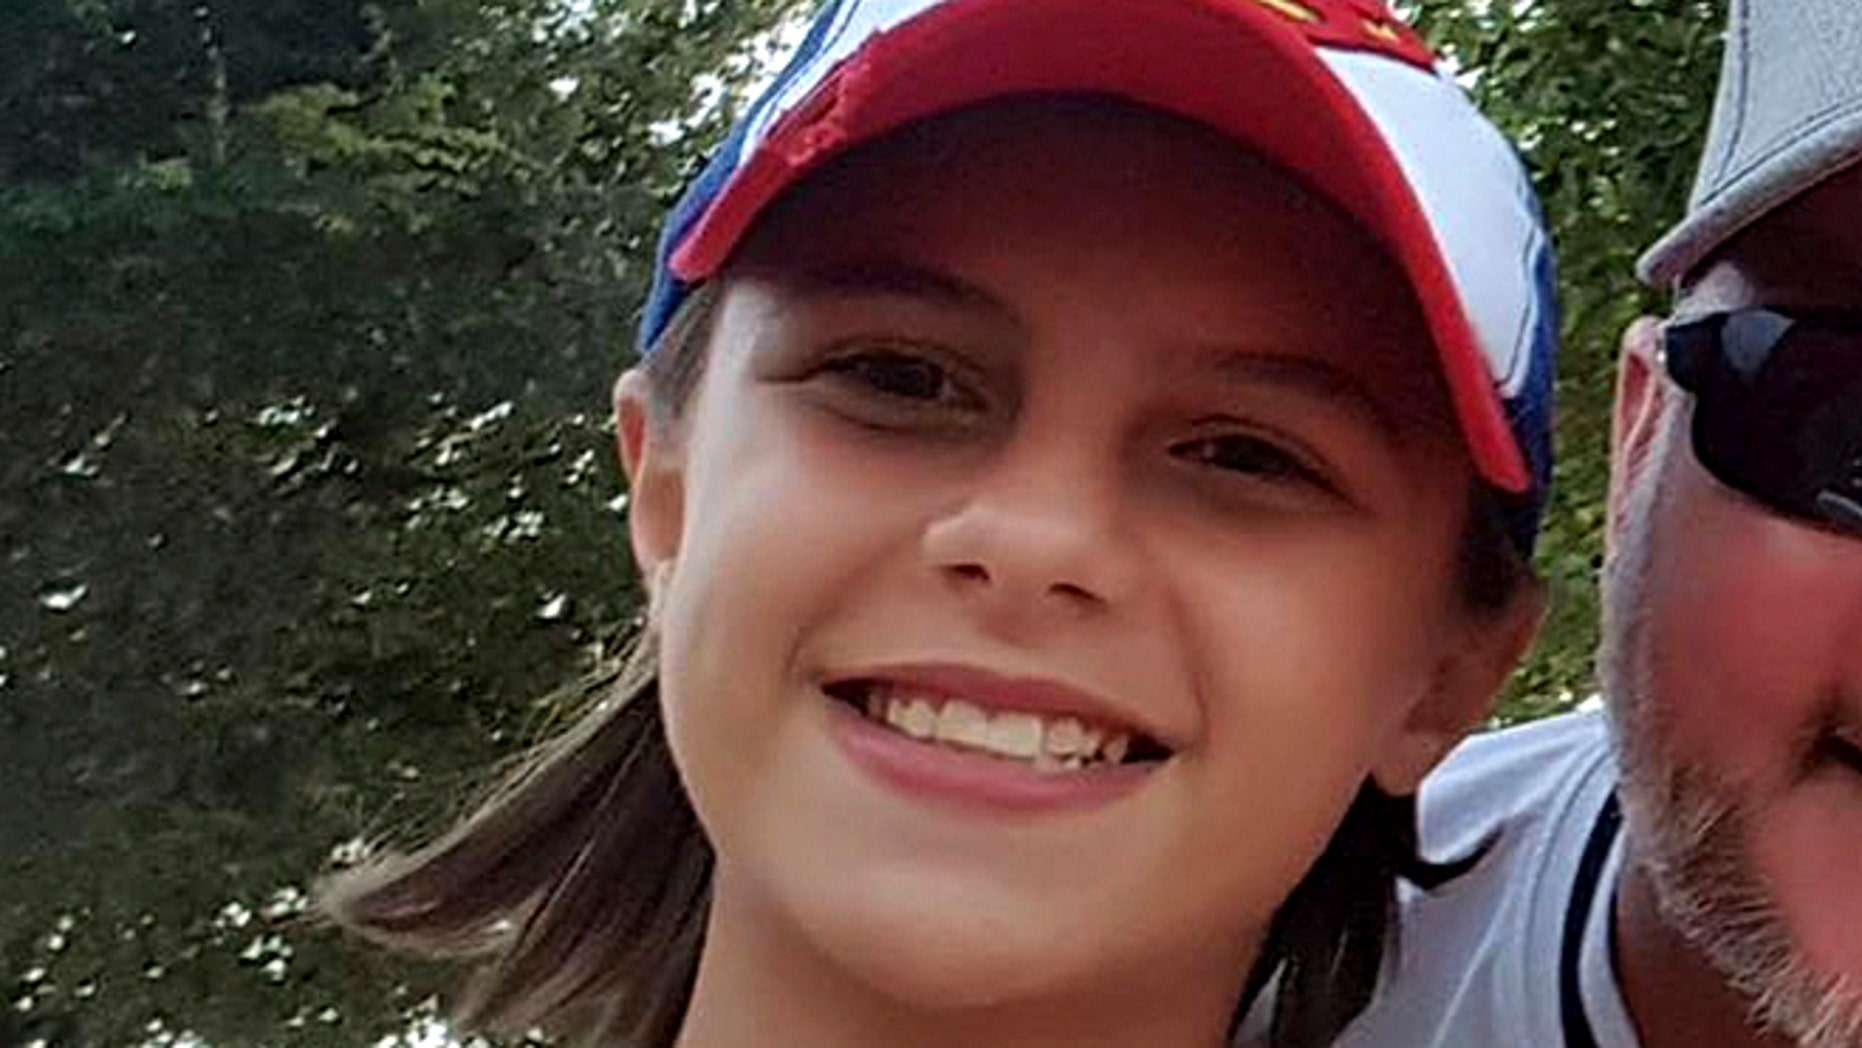 Kaytlynn Cargill disappeared while waking her dog Monday in Bedford, Texas.